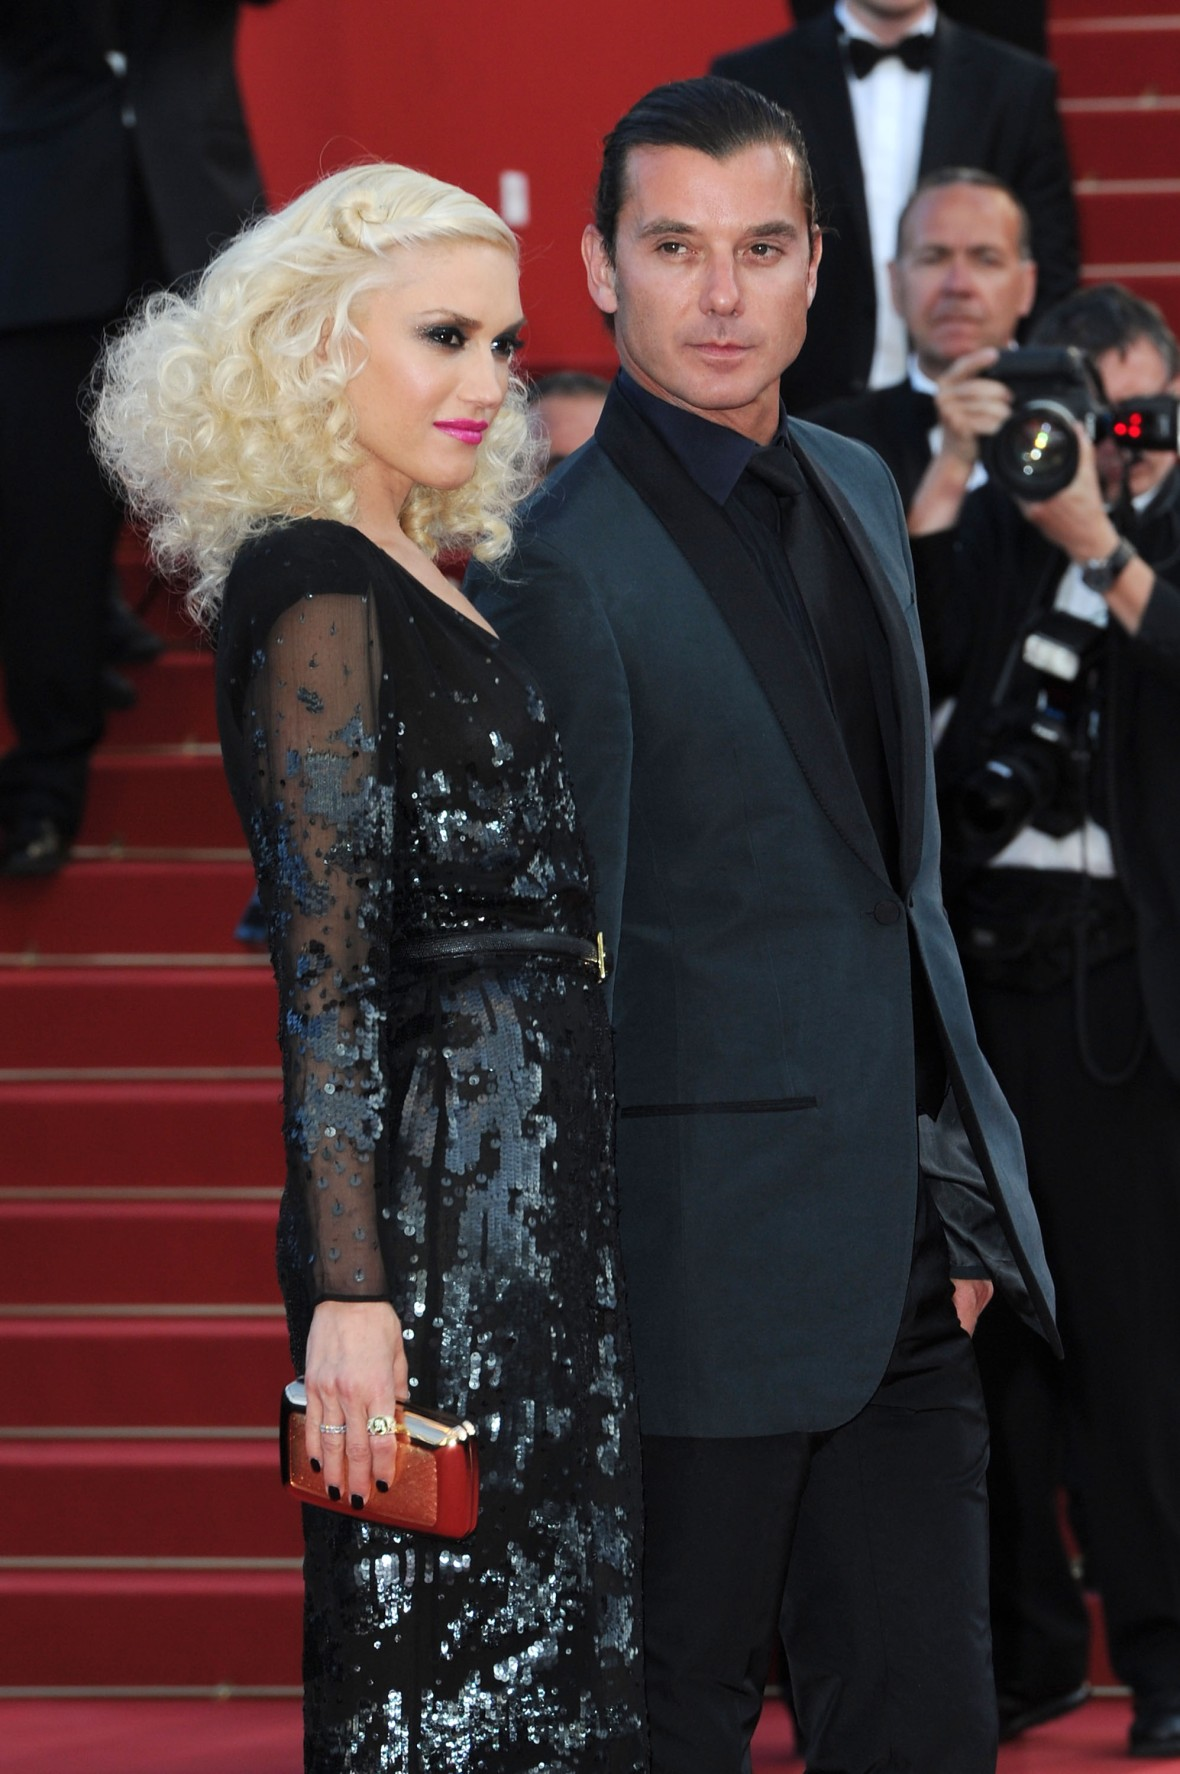 Gavin Rossdale and Gwen Stefani Split